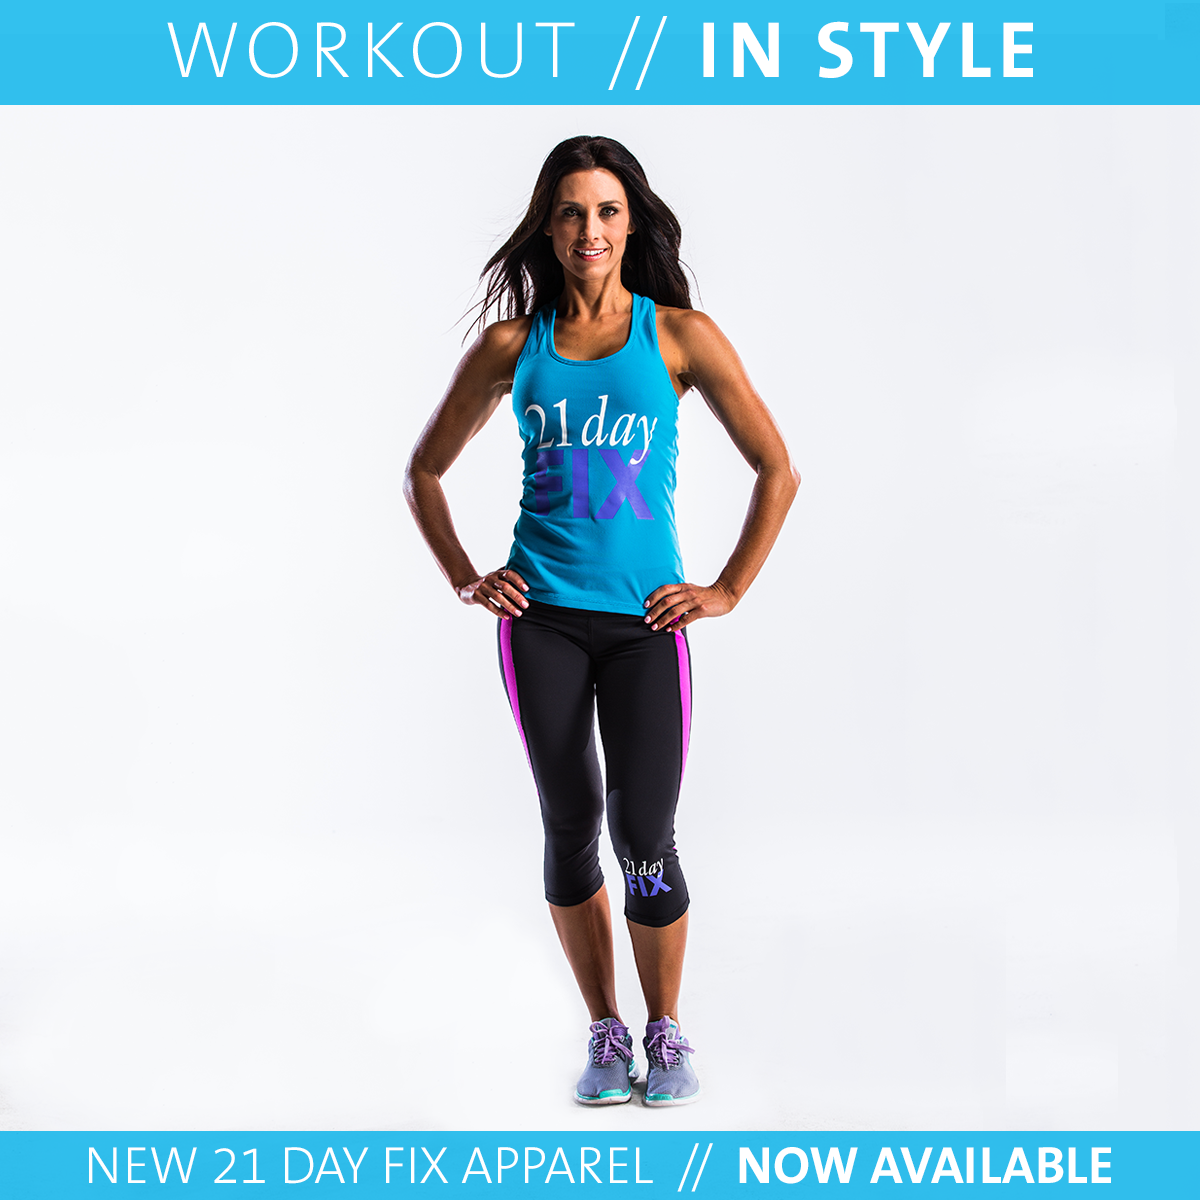 Pin On Autumn Calabrese 21 Day Fix